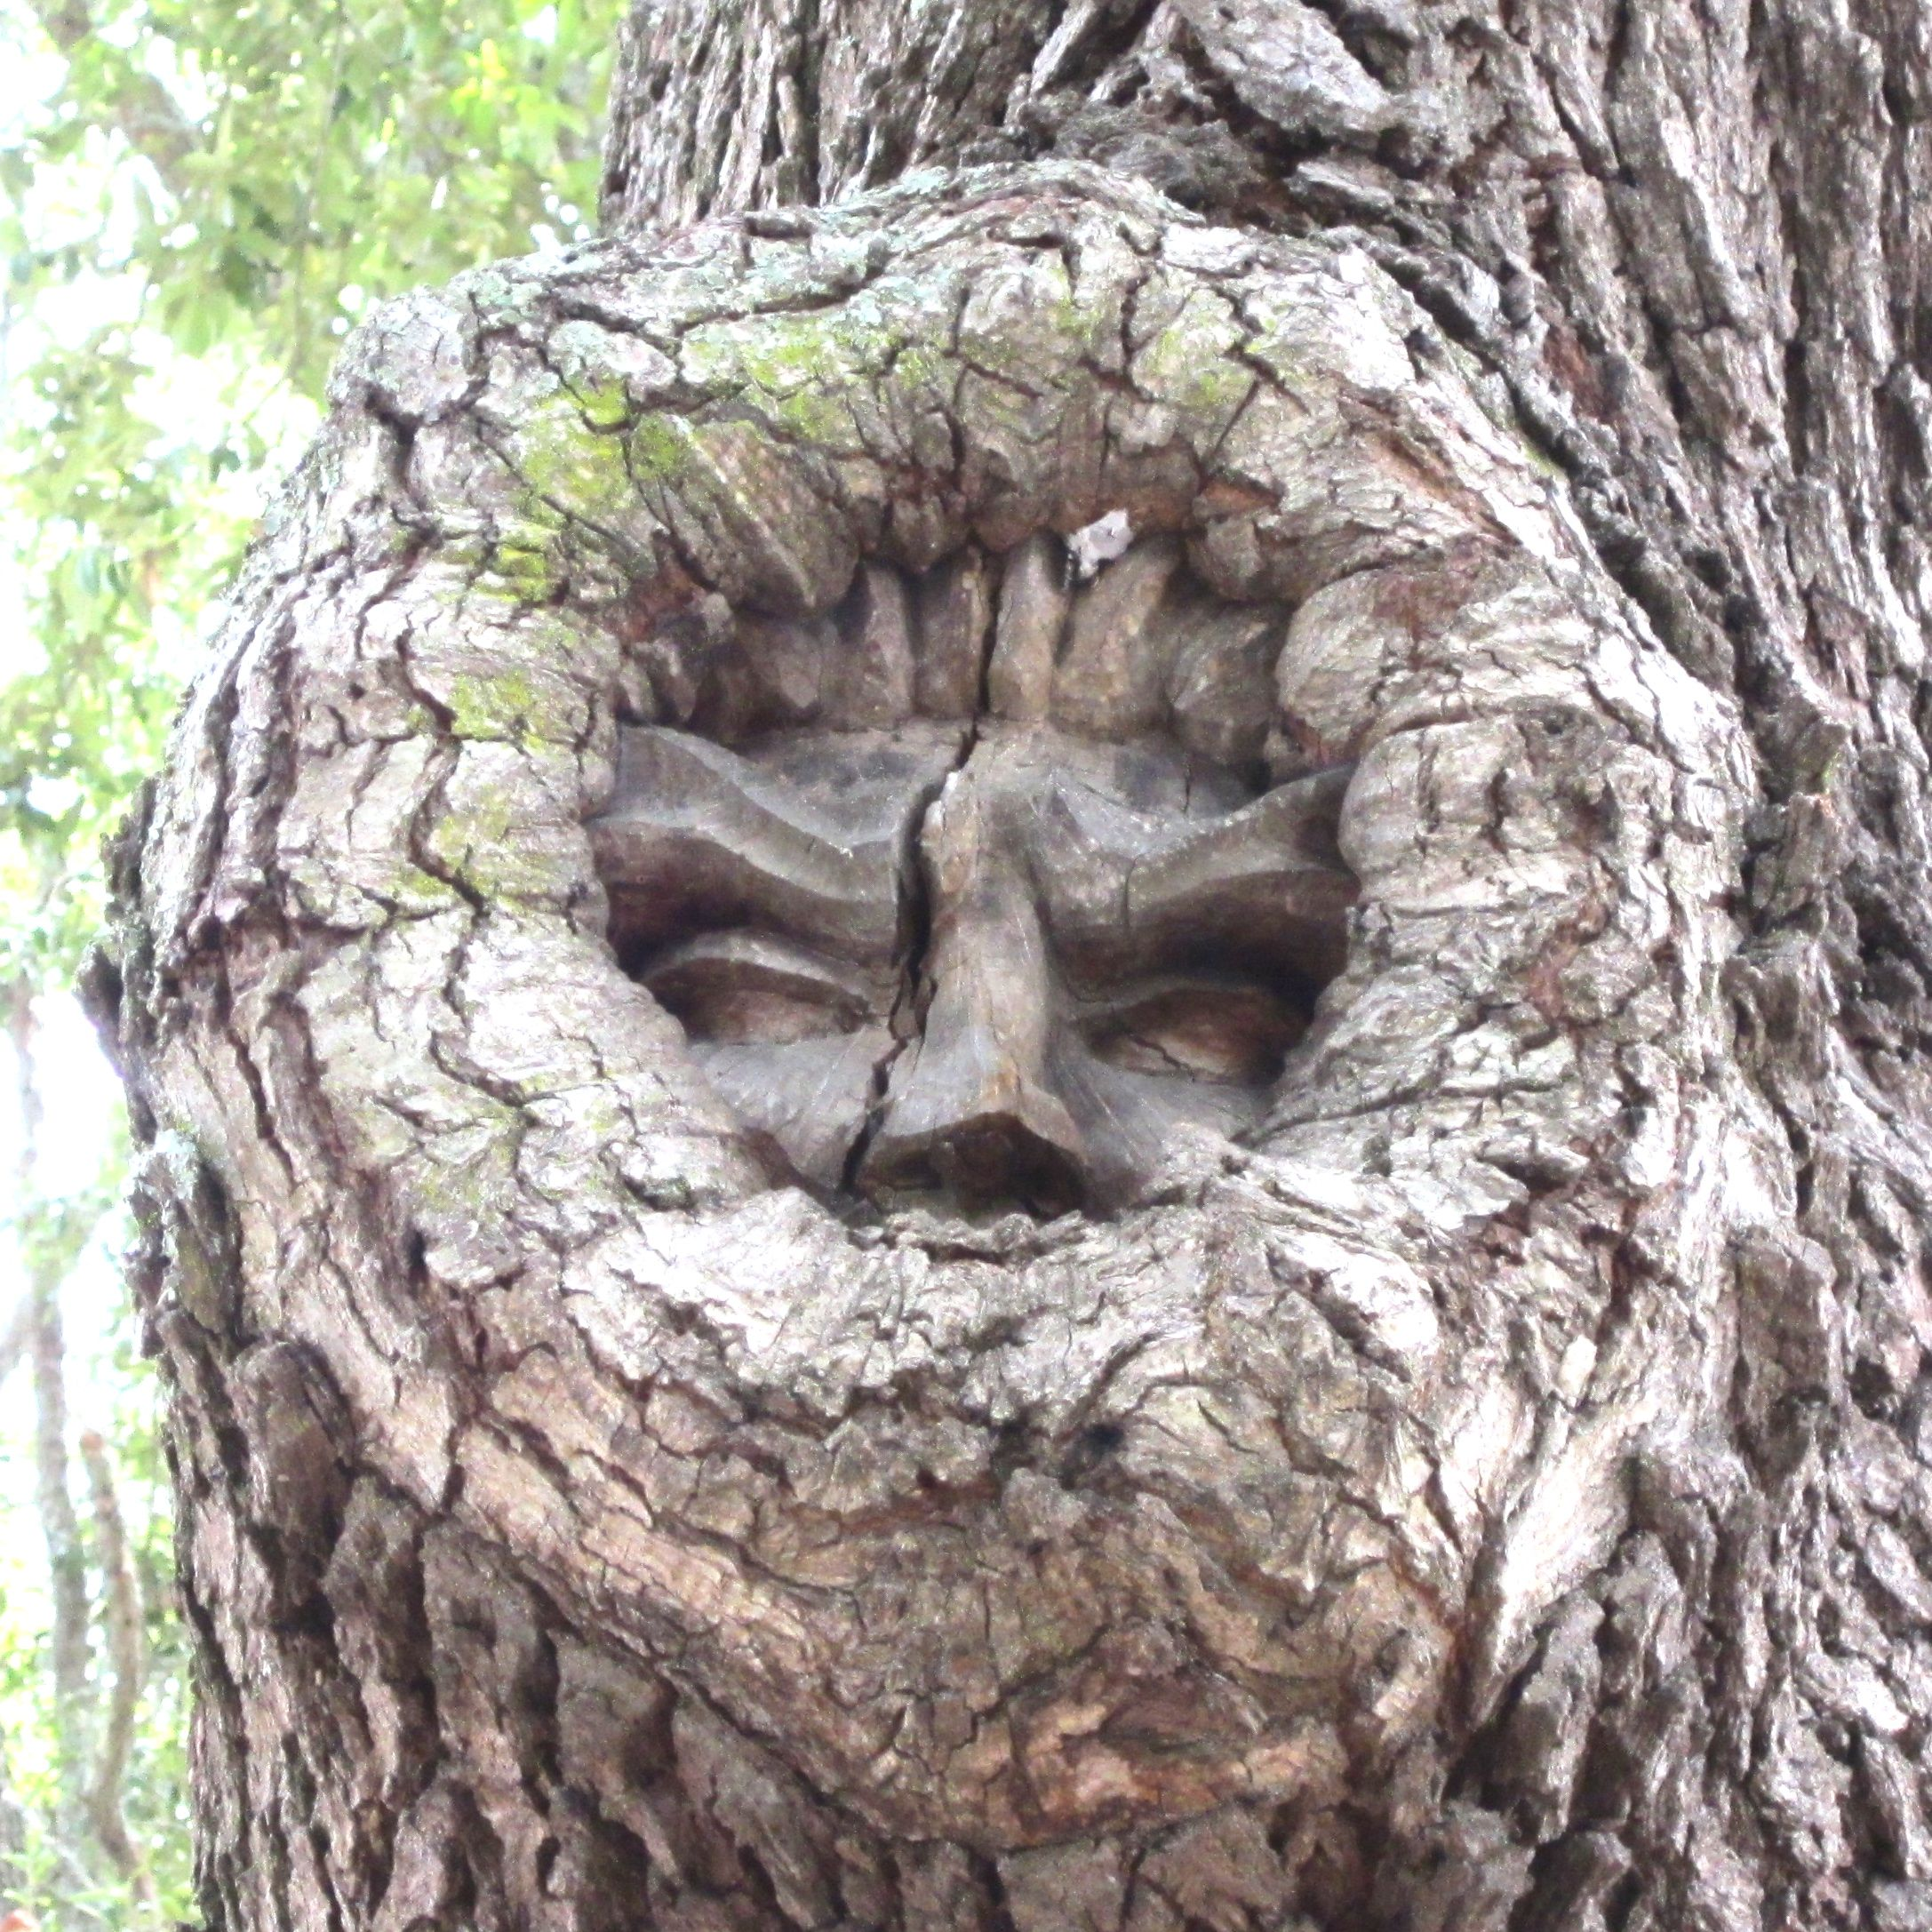 Tree Spirits of St. Simons Island: The Search Continues | GALLIVANCE